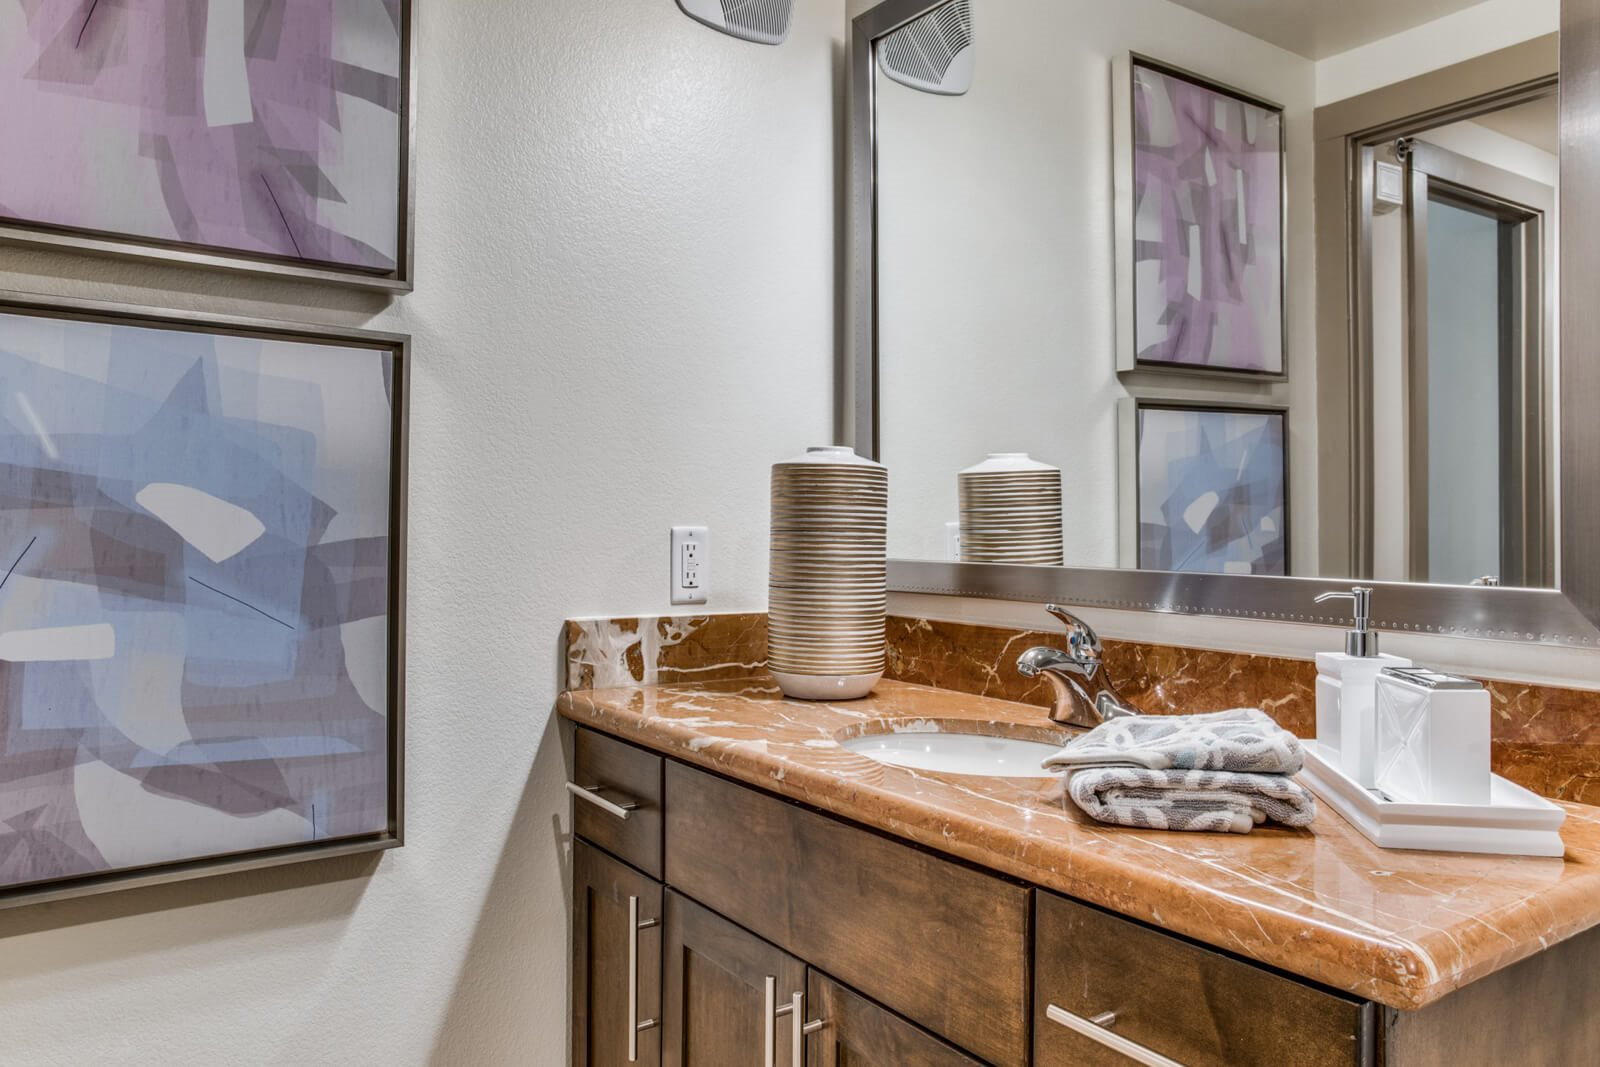 Spa-Inspired Bathrooms at The Monterey by Windsor, 3930 McKinney Avenue, Dallas